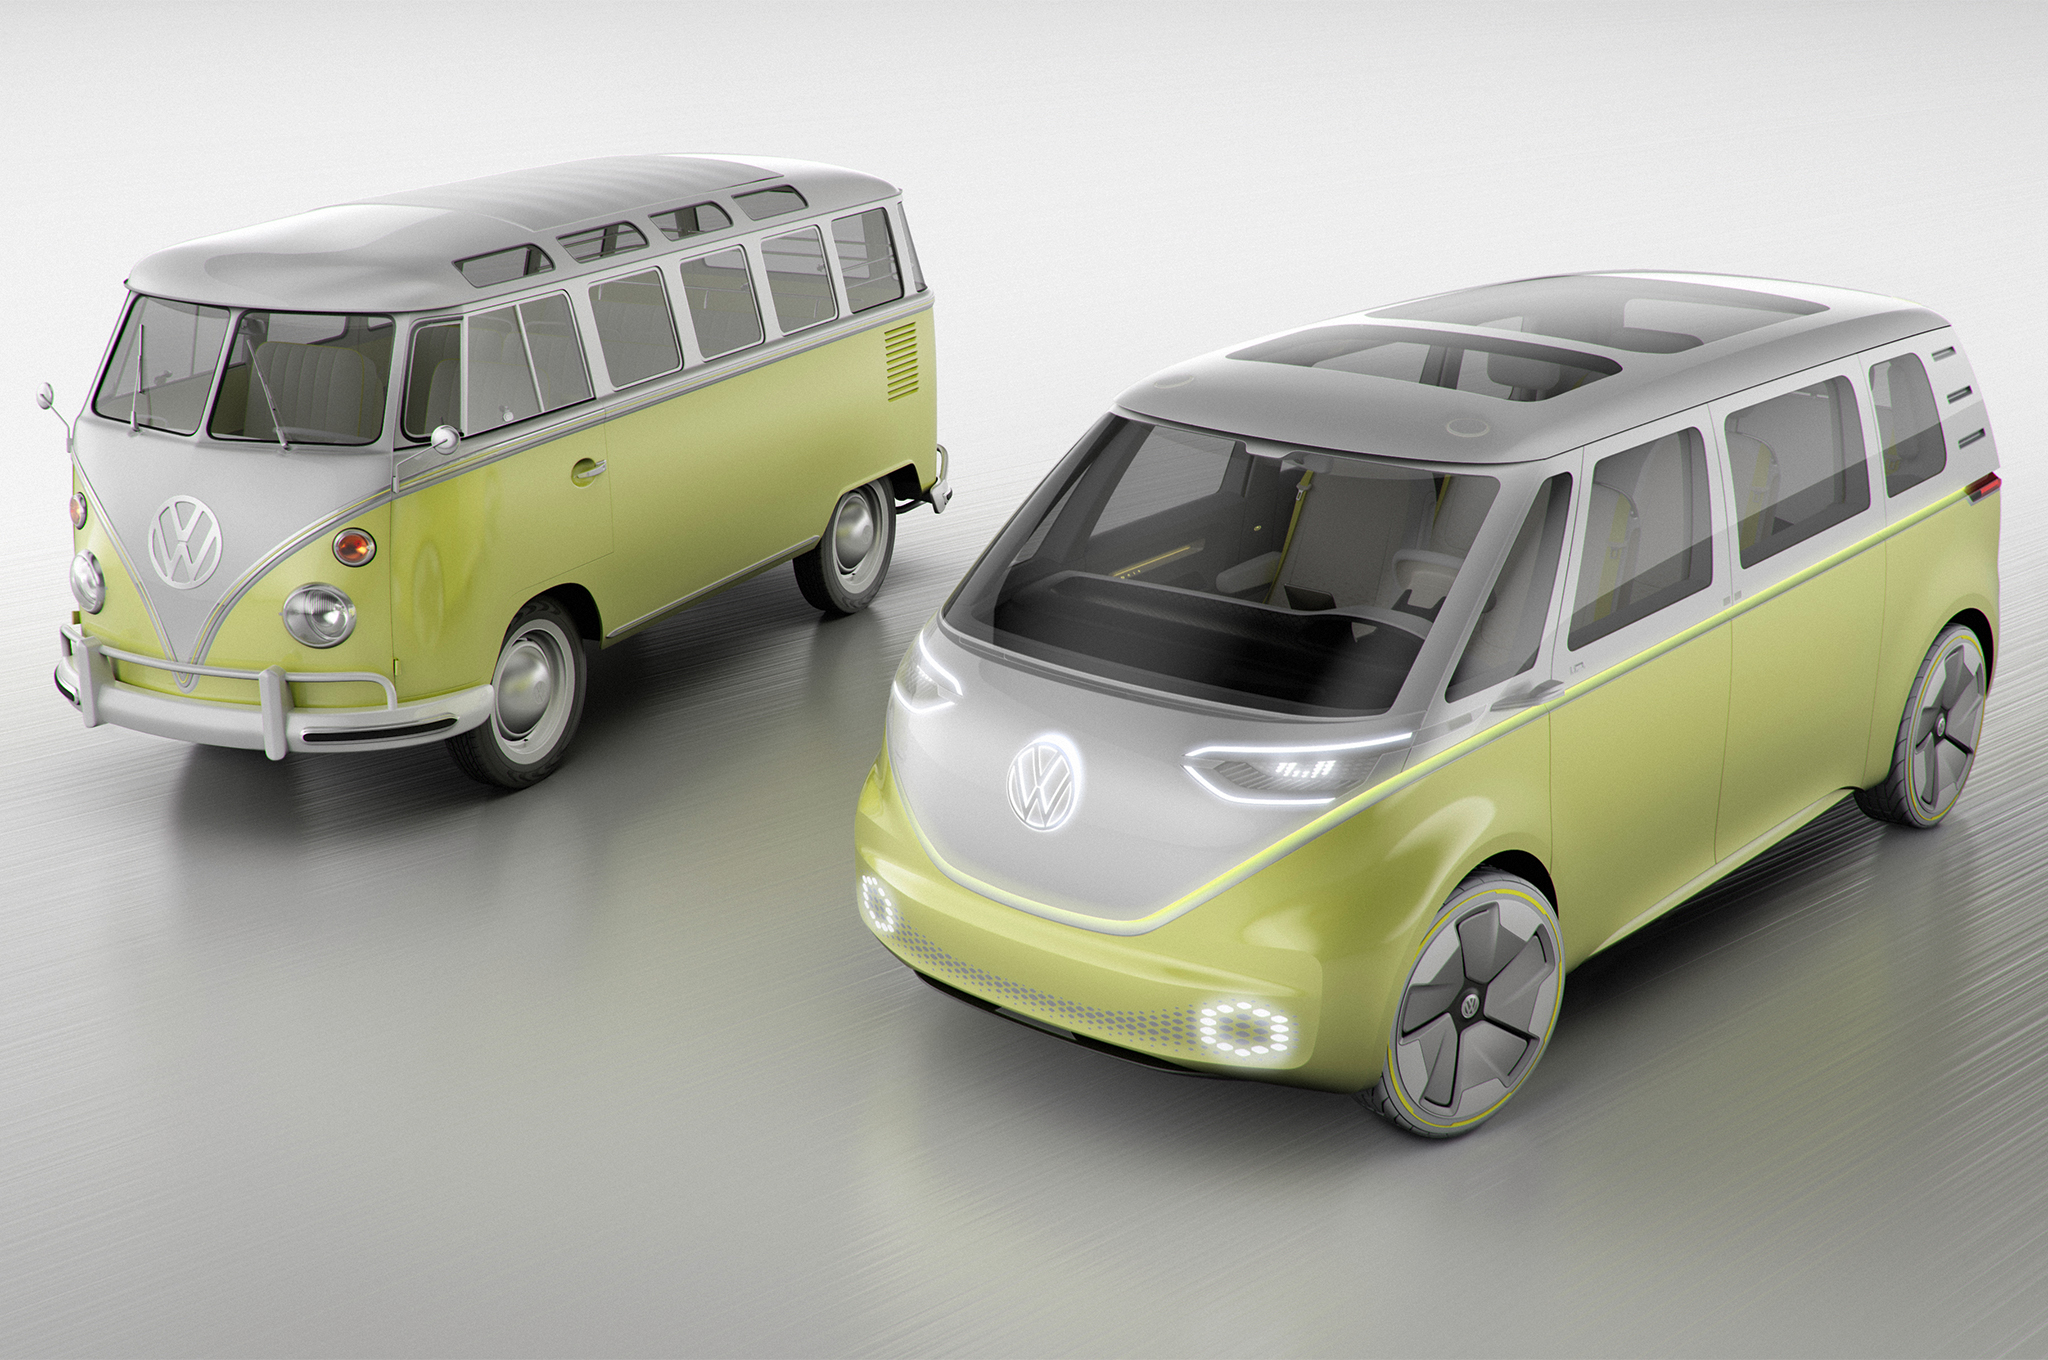 volkswagen-id-buzz-concept-front-three-quarter-with-van